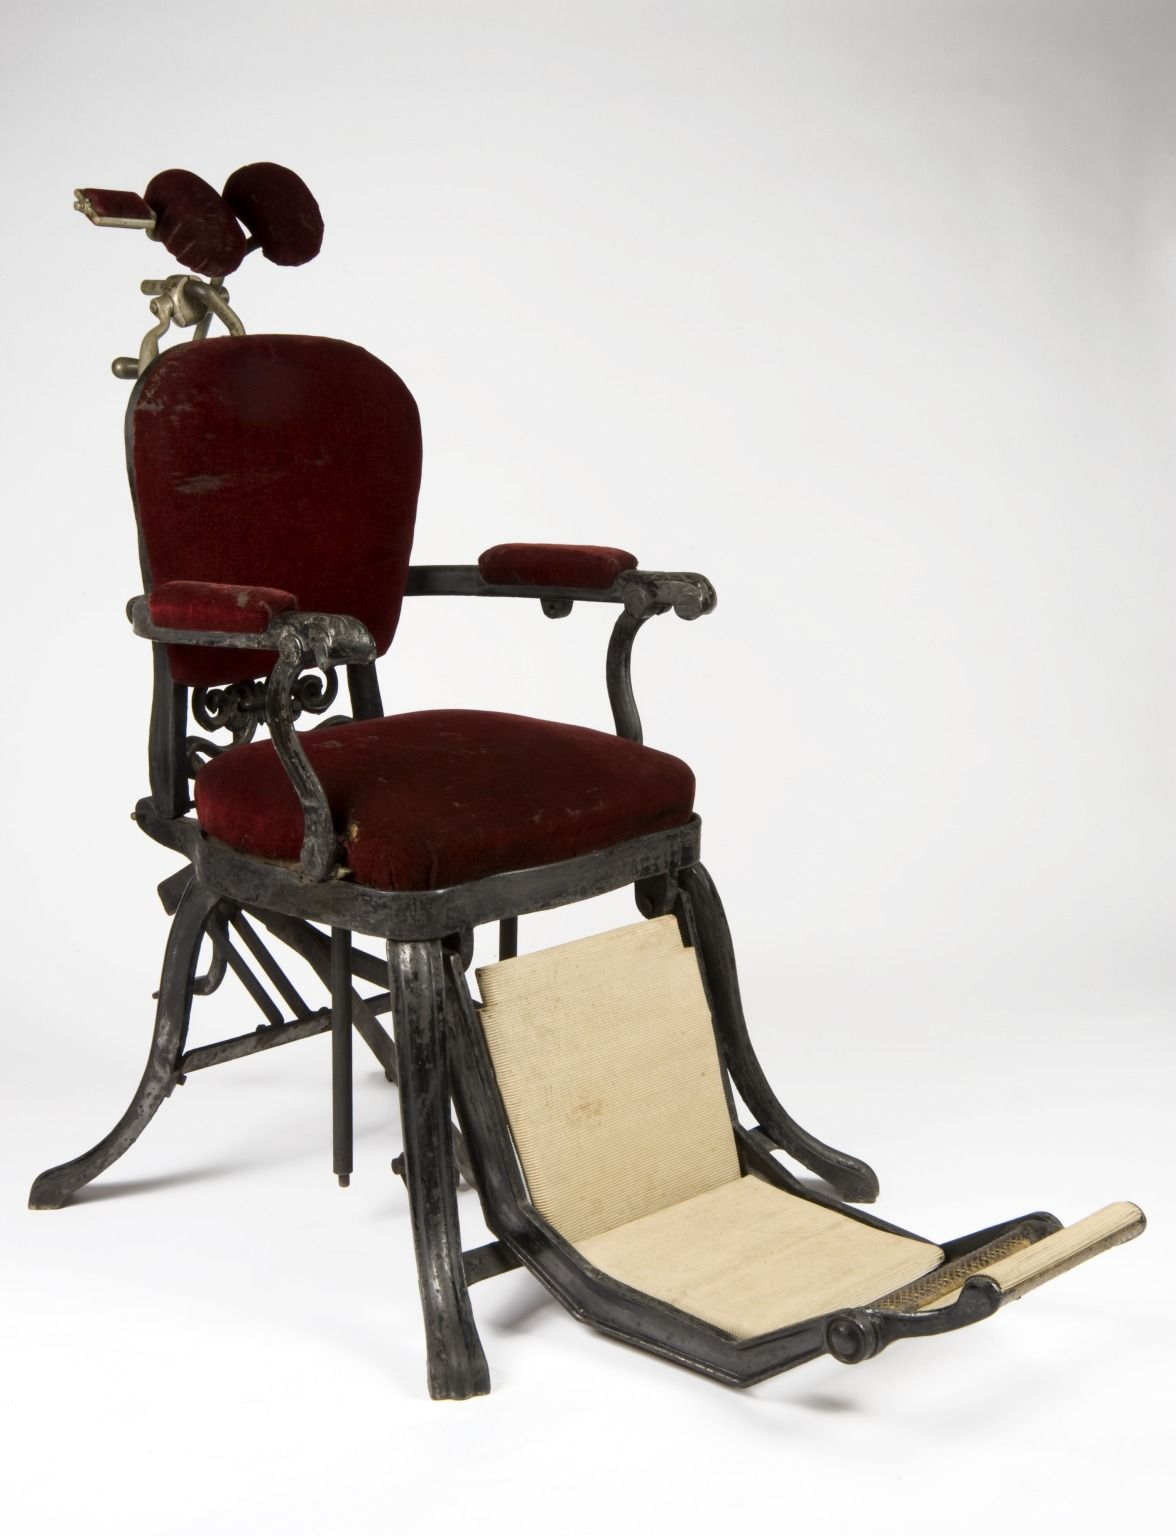 Dental Chair England 1880 1910 Plush Velvet Upholstered Seating Cast Iron Feet And A Separate Rubber Footrest Make Up This Fully Adjule